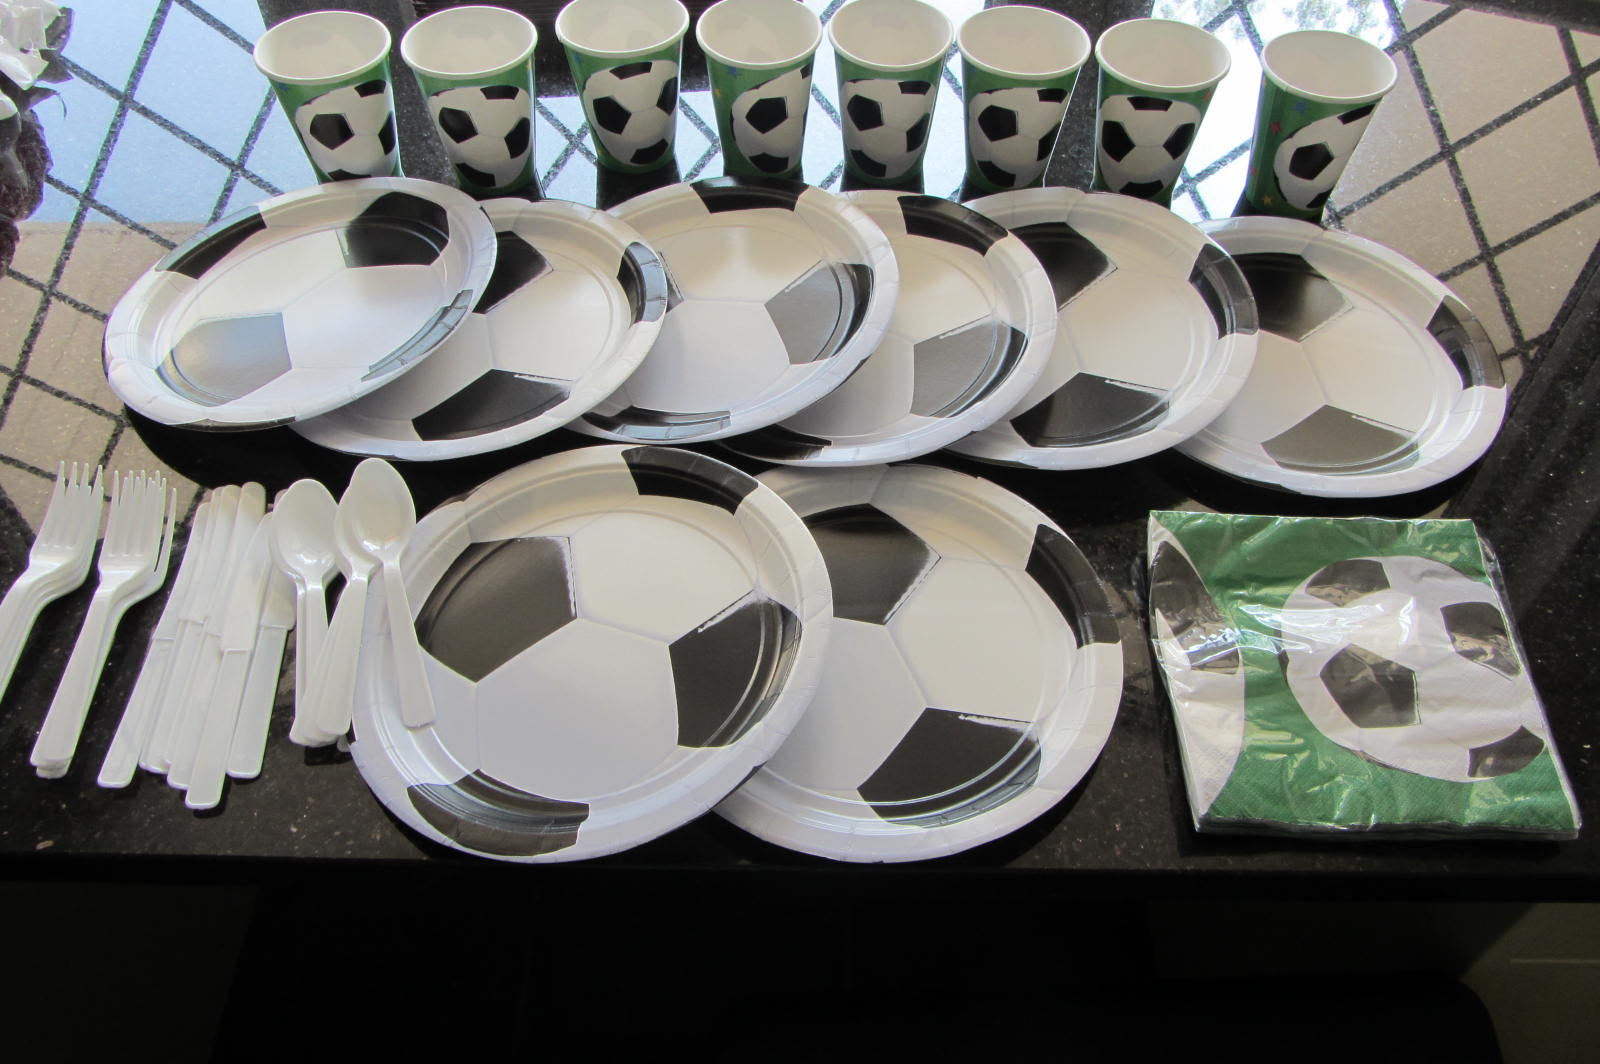 FOOTBALL-KIDS-PARTY-NAPKINS-PLATES-CUTLERY-CUPS-YOU- & FOOTBALL KIDS PARTY NAPKINS PLATES CUTLERY CUPS YOU CHOOSE SOCCER ...